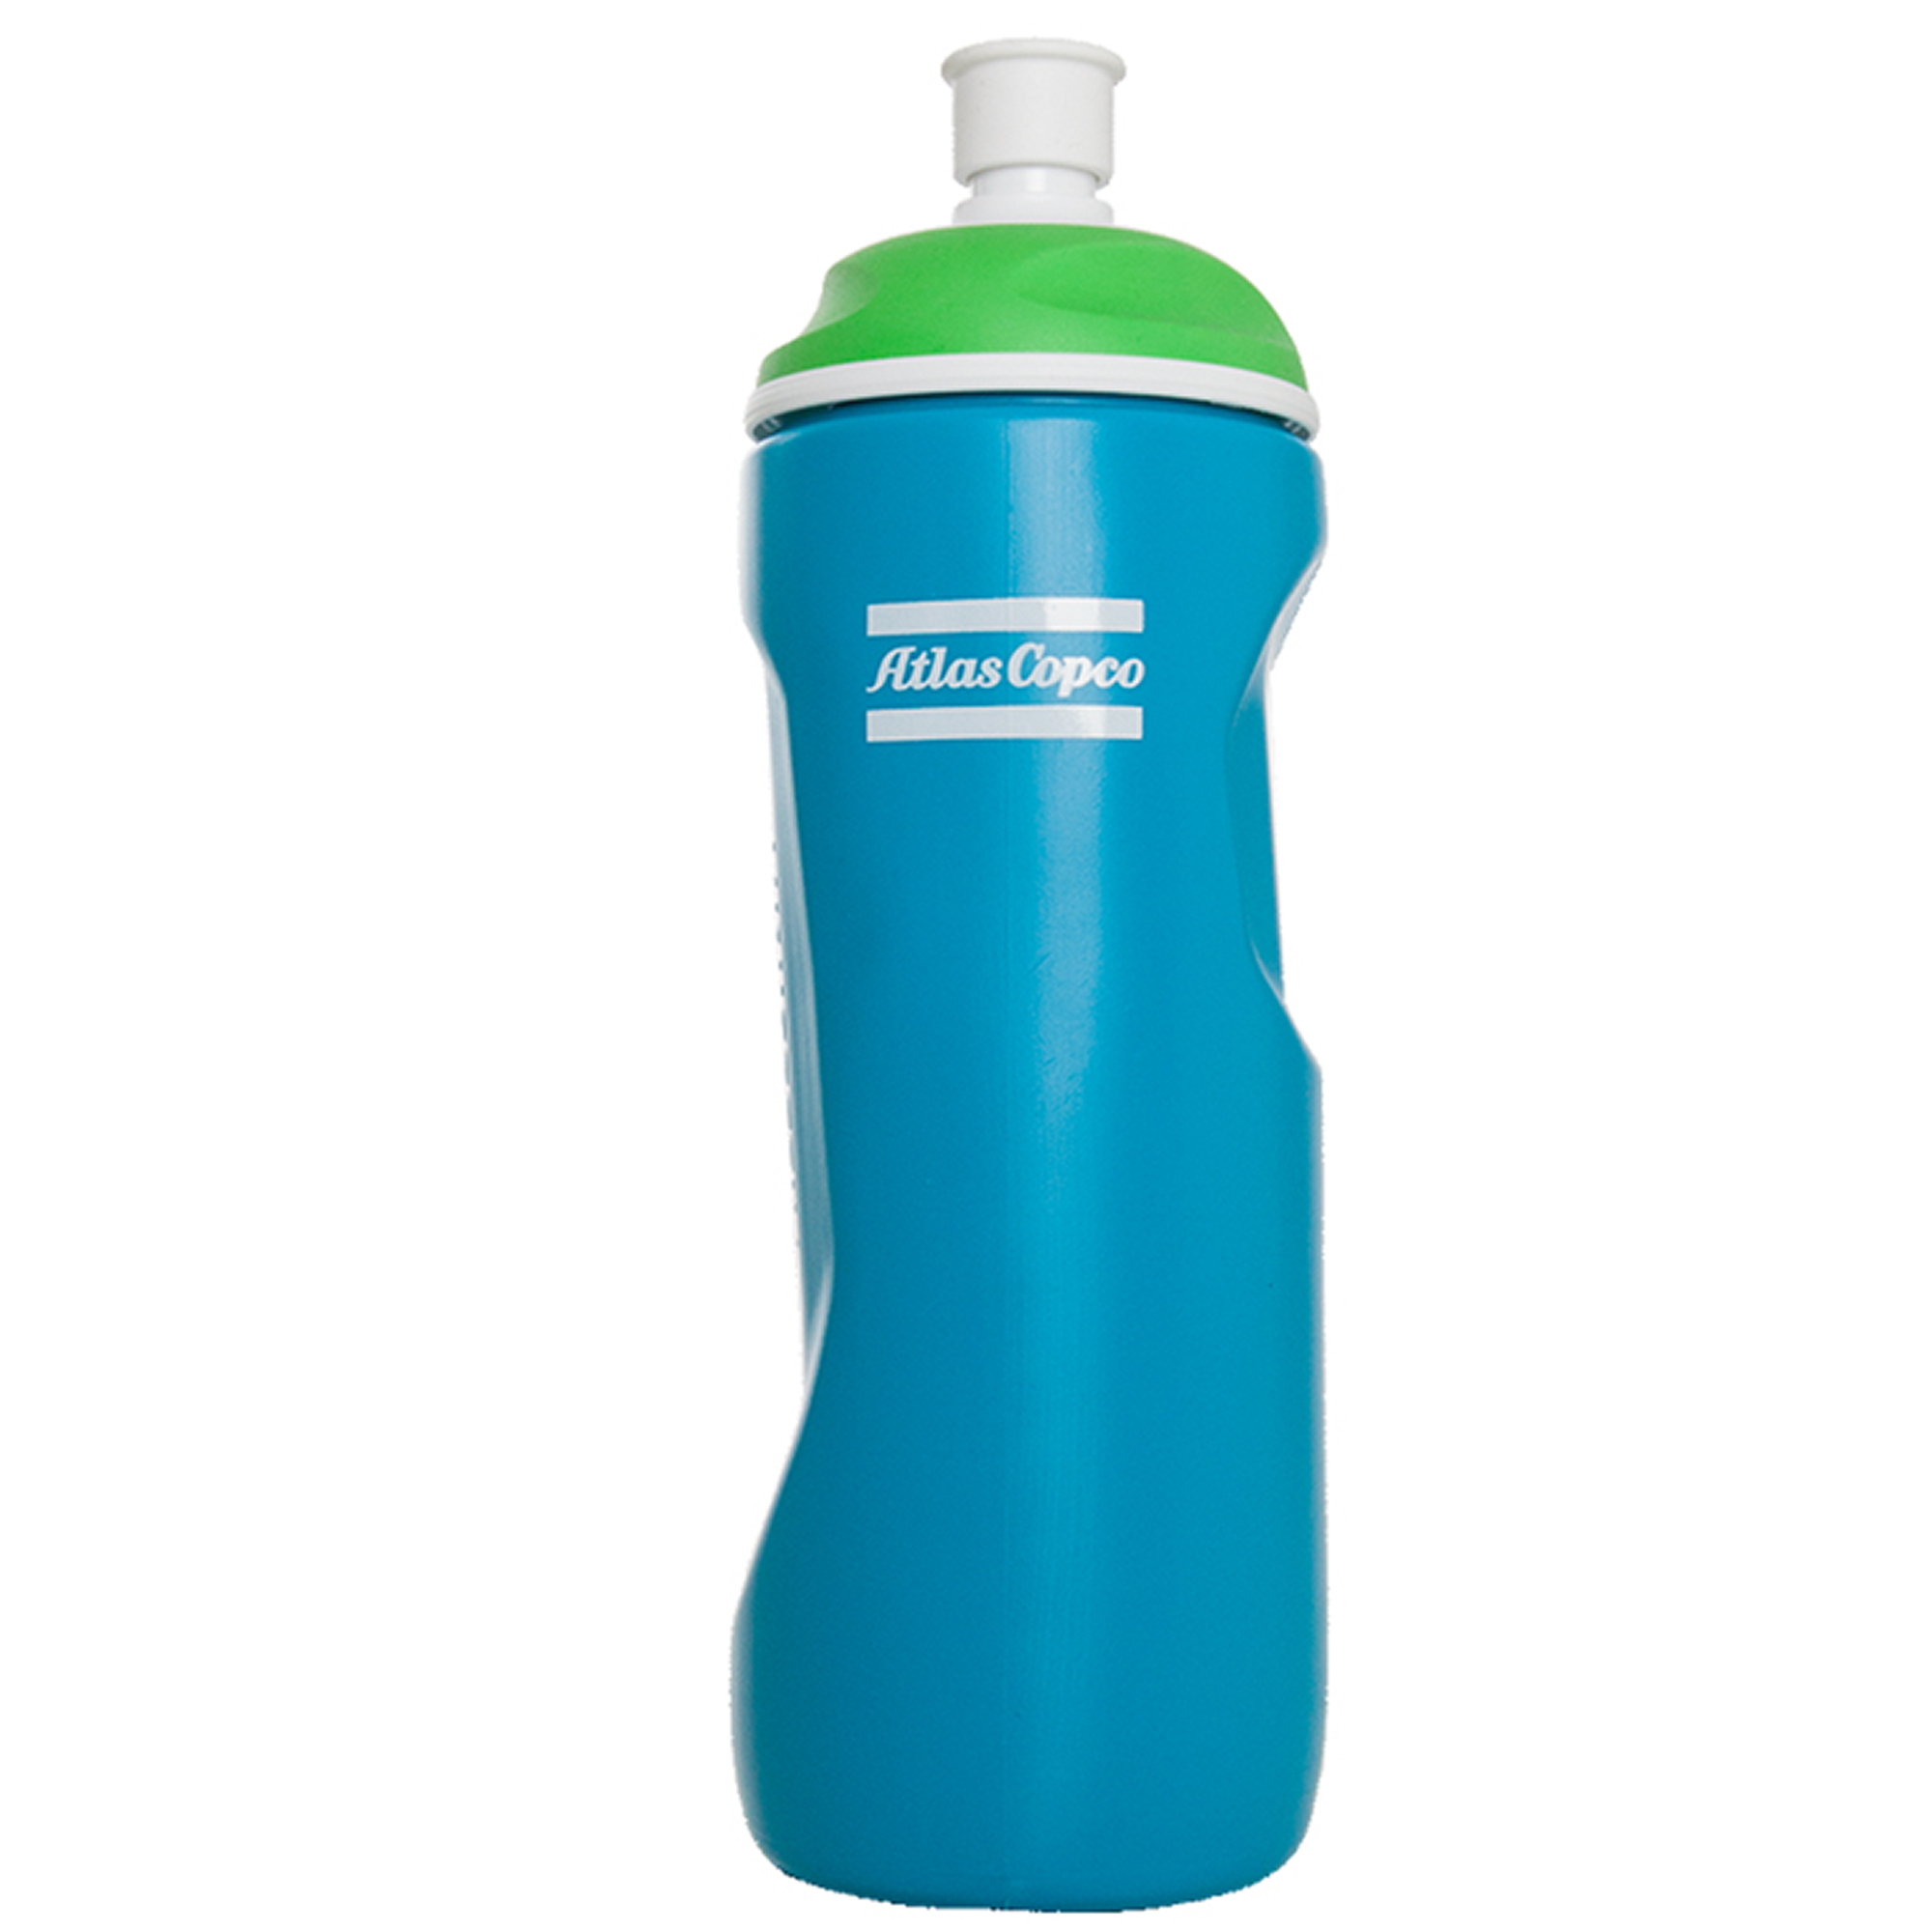 <p>A water bottle with a difference. This refreshing water bottle is made from high quality bio recyclable plastic derived from sugar cane*. A sports cap and ergonomic design make this water bottle ideal for activities like gym workouts, running, cycling and trekking. *The sugar cane is produced at CSR certified plantations.</p>